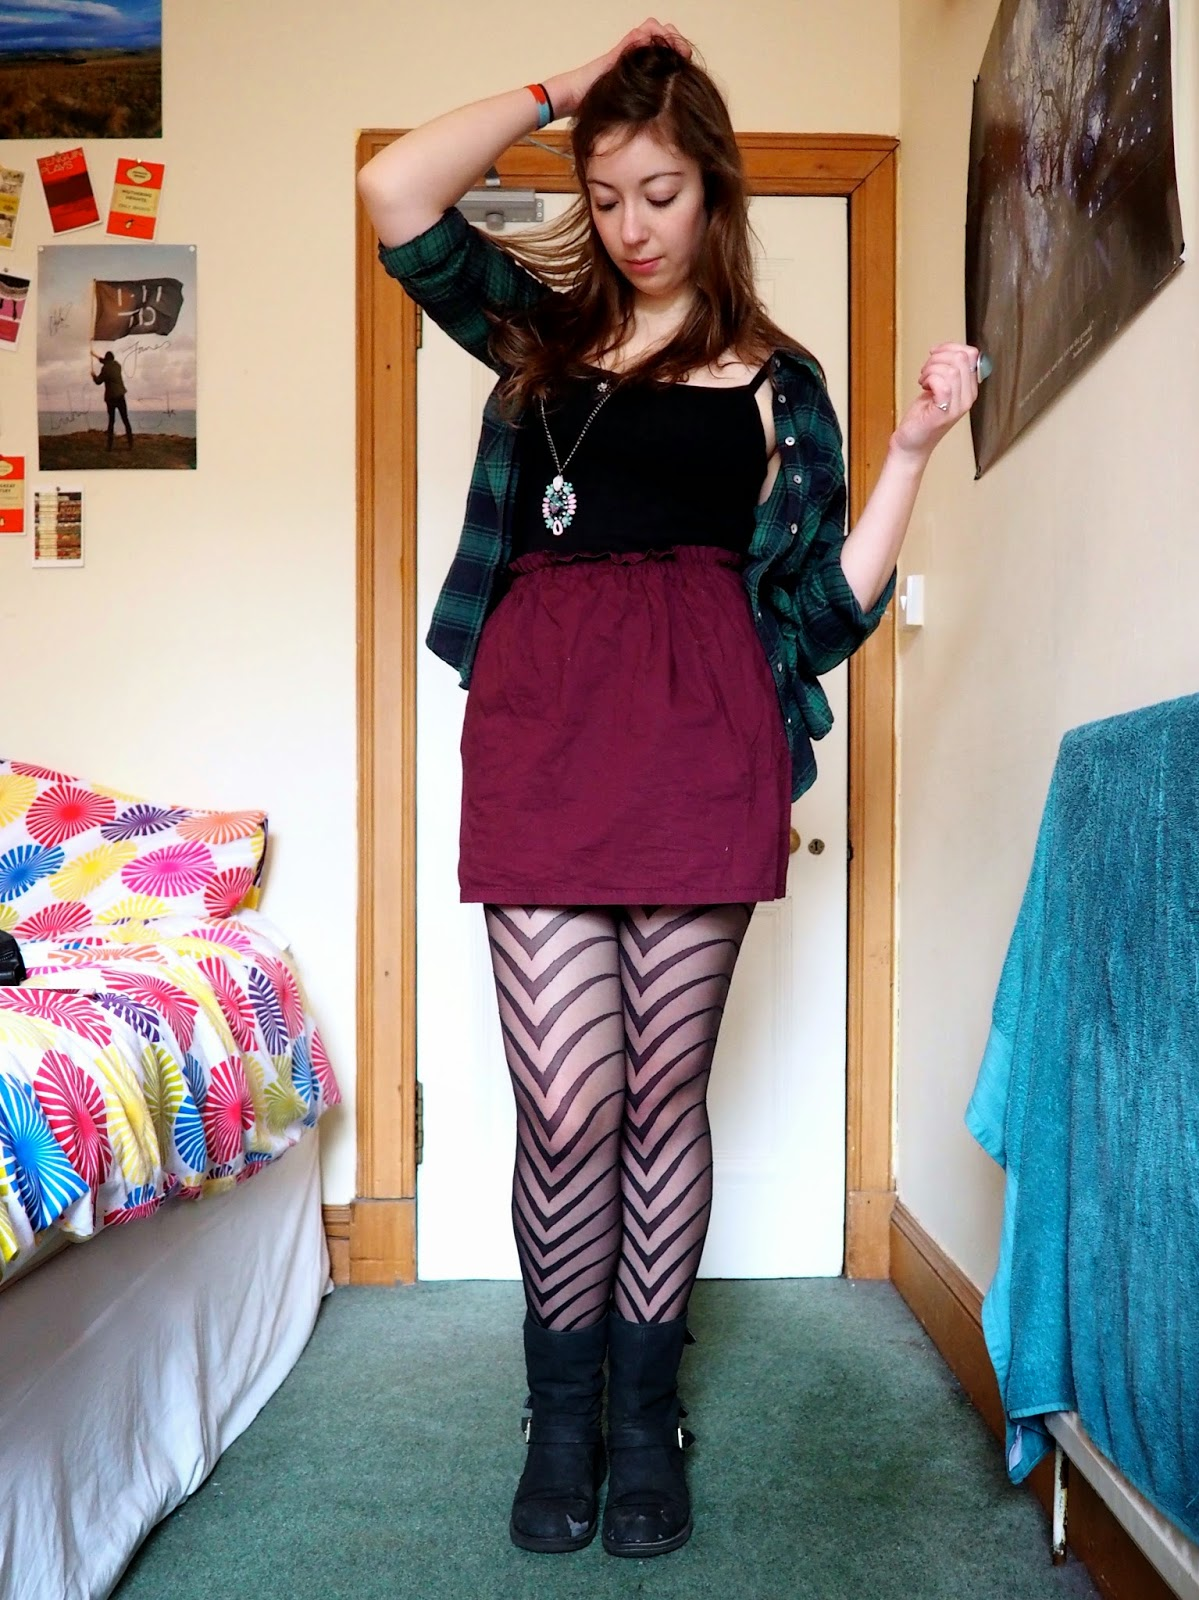 Statement pieces outfit | Green checked shirt, black vest, purple skirt, patterned tights & black biker boots